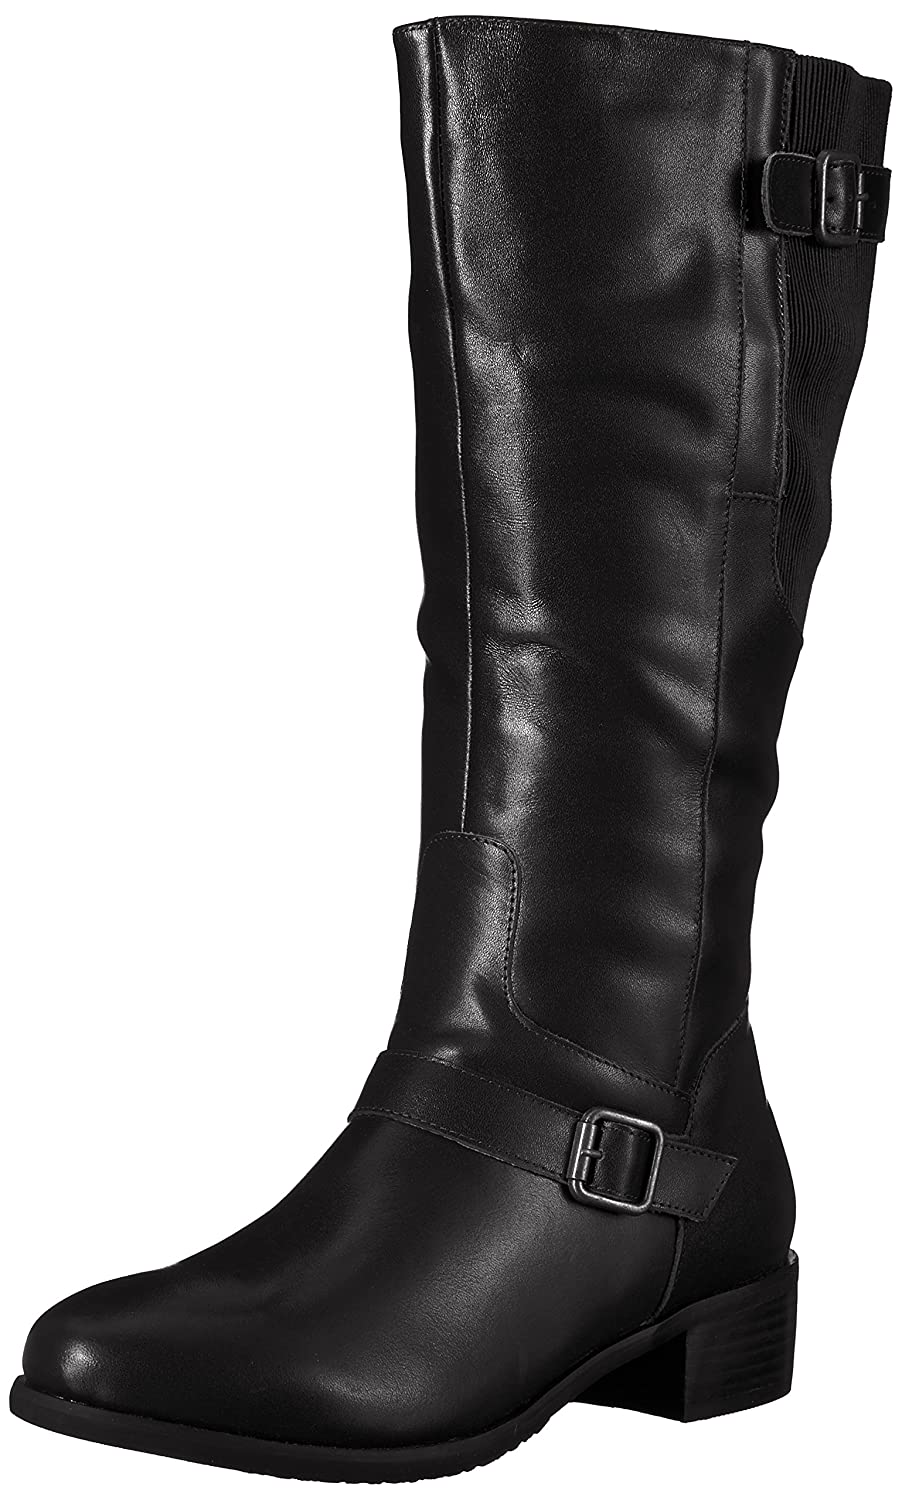 Propet Women's Teagan Riding Boot B06XRPYMZ7 7.5 2E US|Black